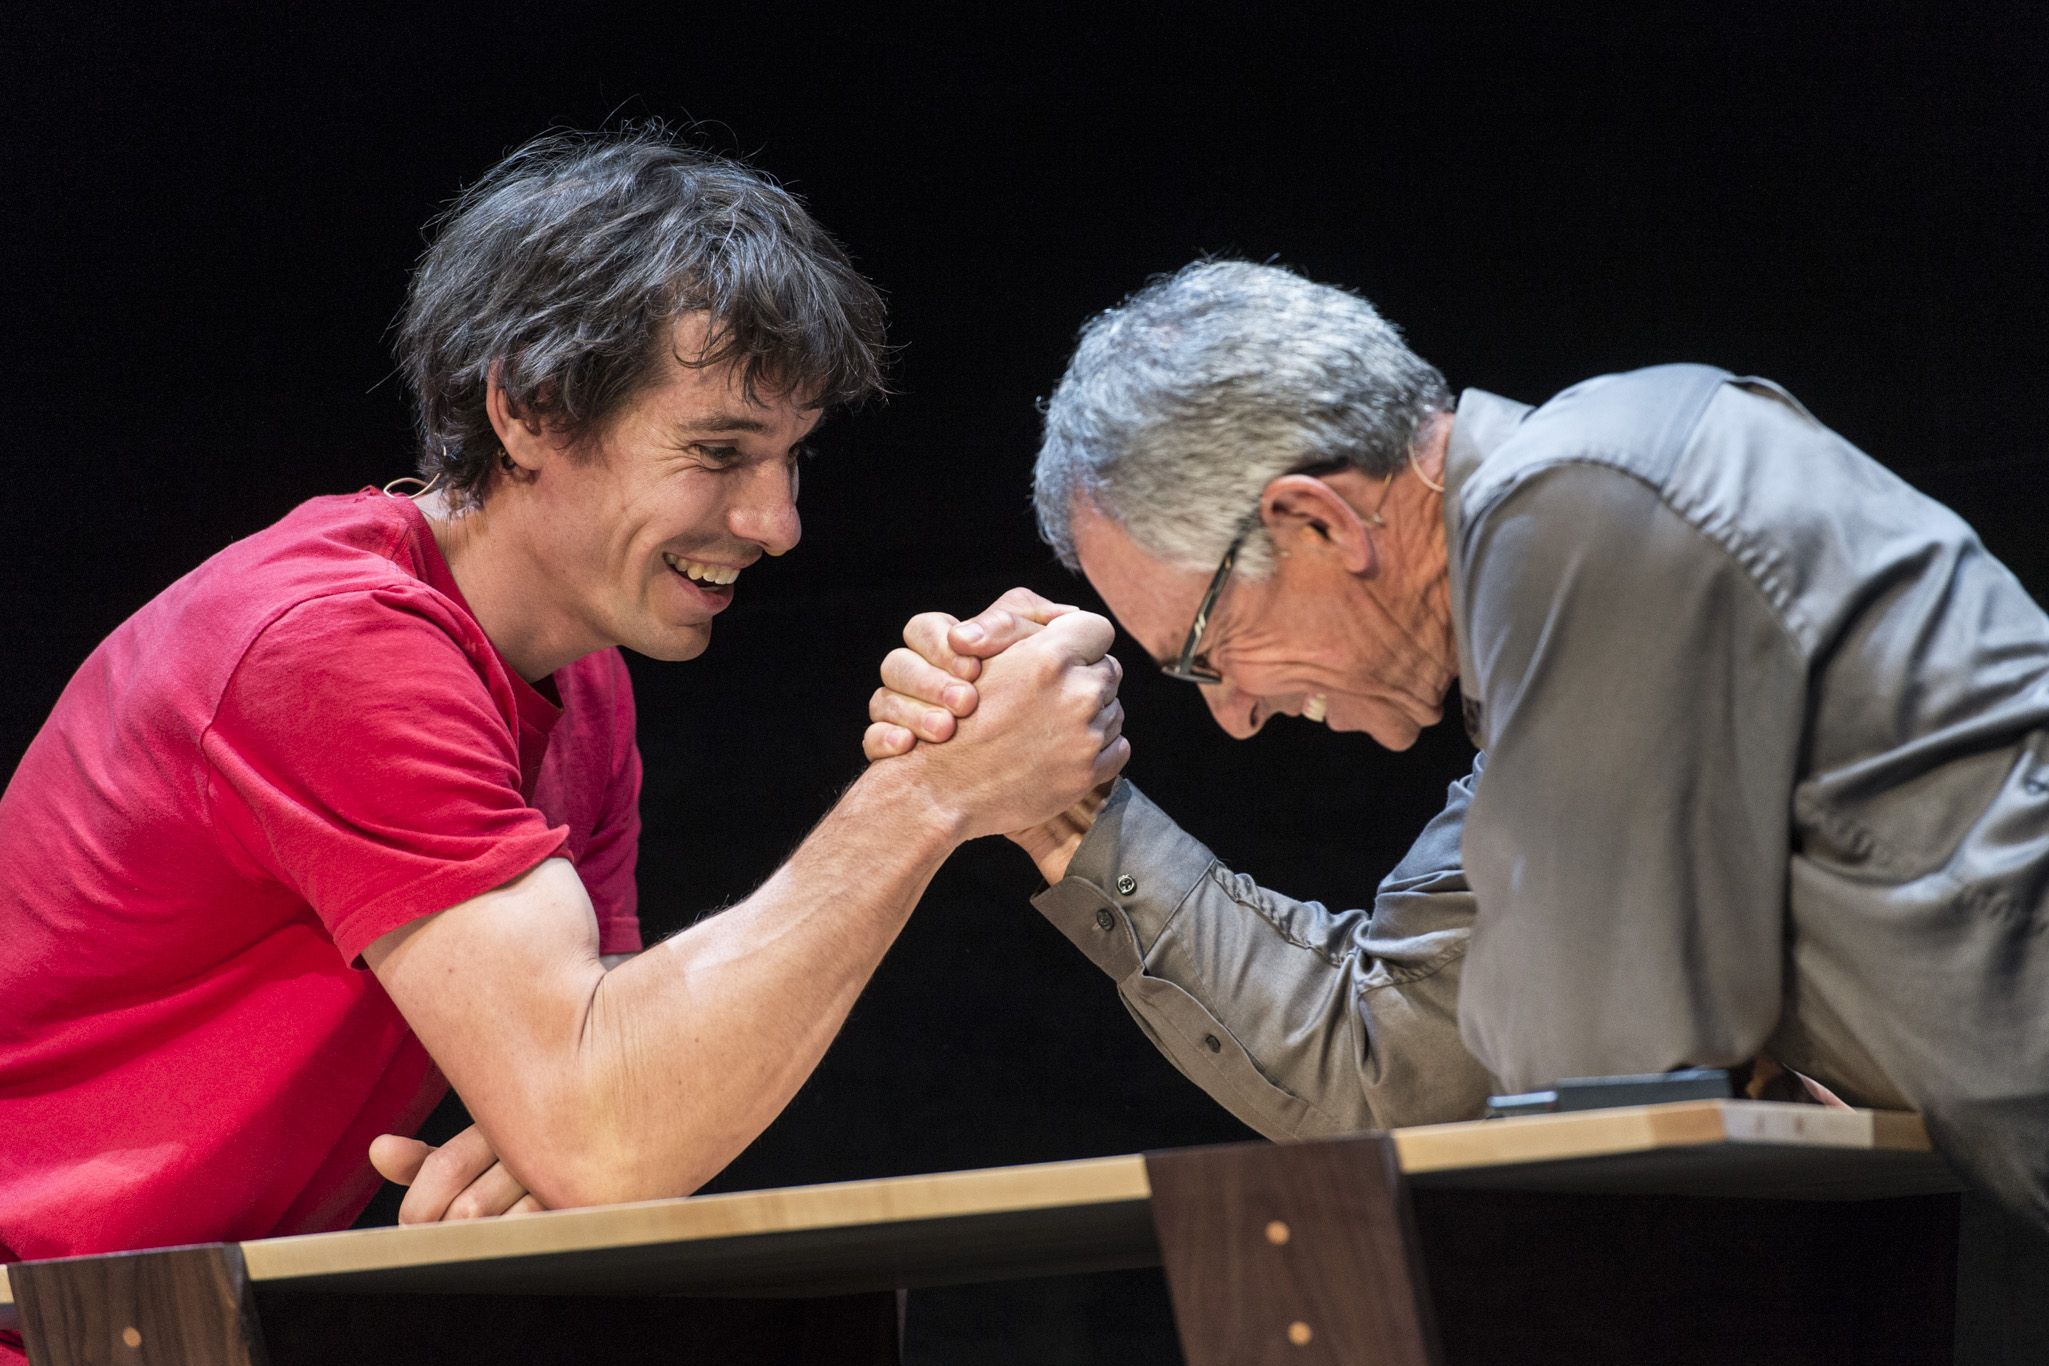 Alex Honnold and Greg Child arm wrestle by Rita Taylor.jpg